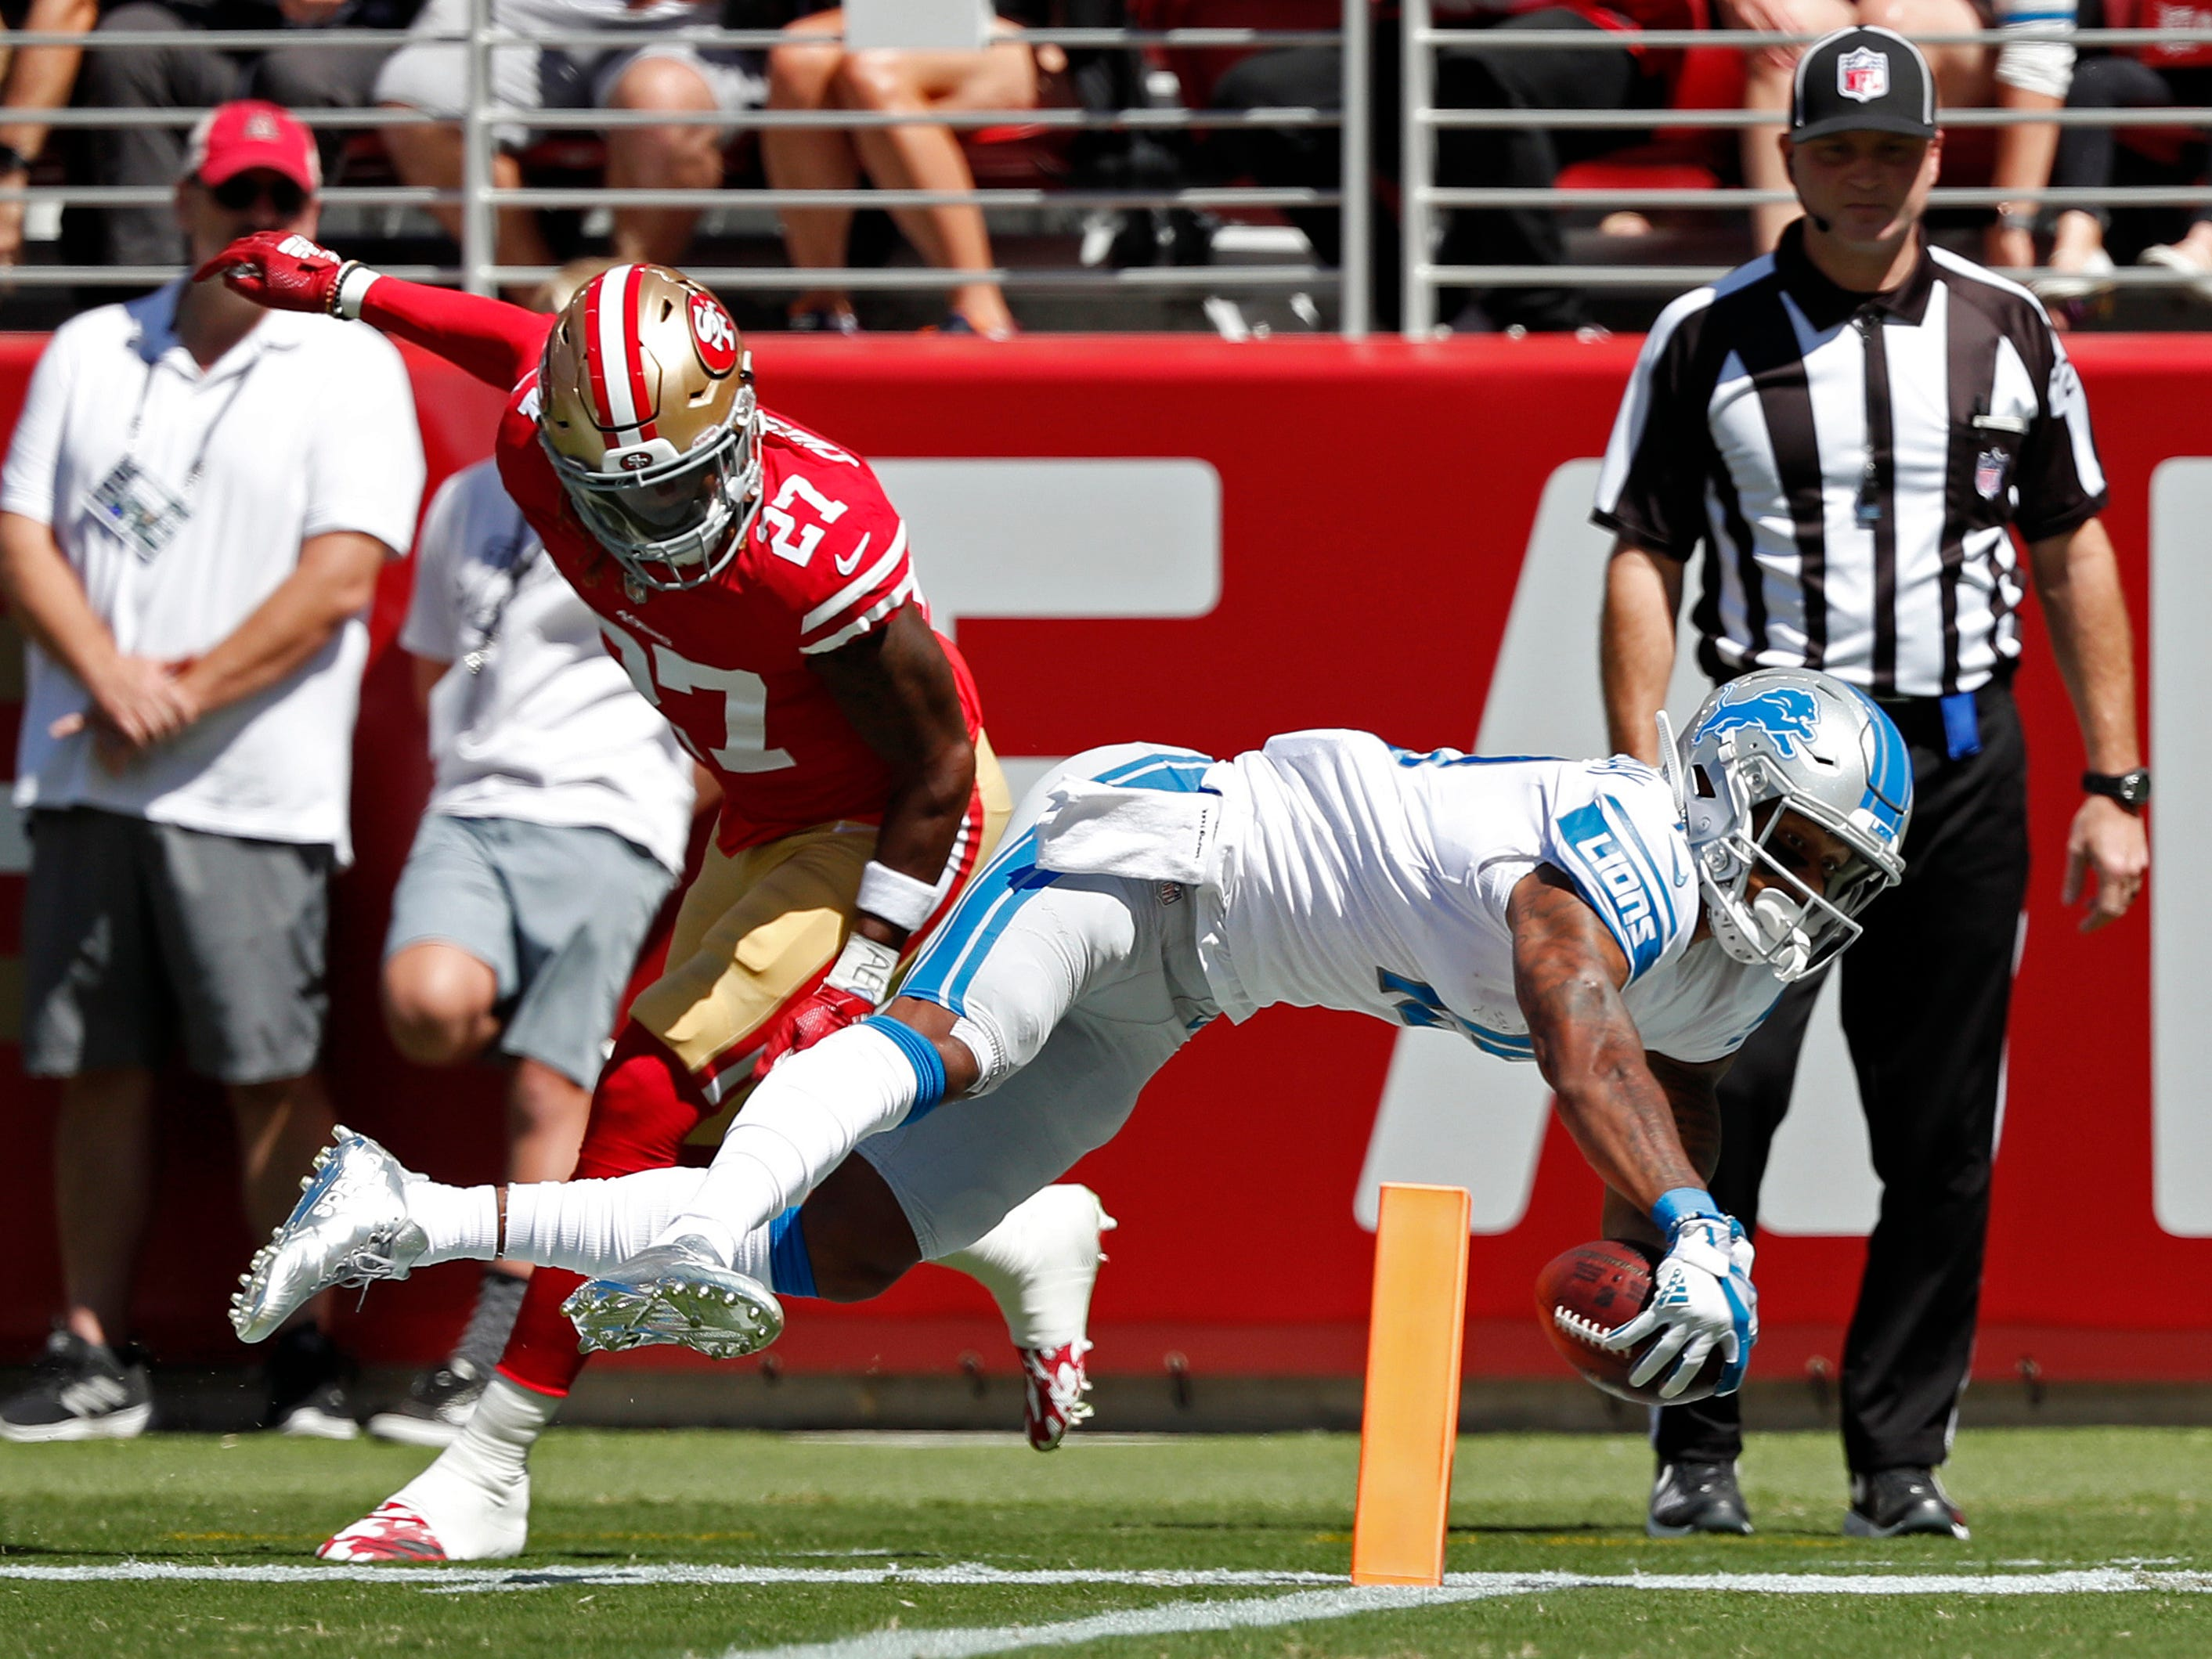 Lions receiver Kenny Golladay reaches for the pylon and scores a touchdown past 49ers defensive back Adrian Colbert in the first half Sunday, Sept. 16, 2018, in Santa Clara, Calif.